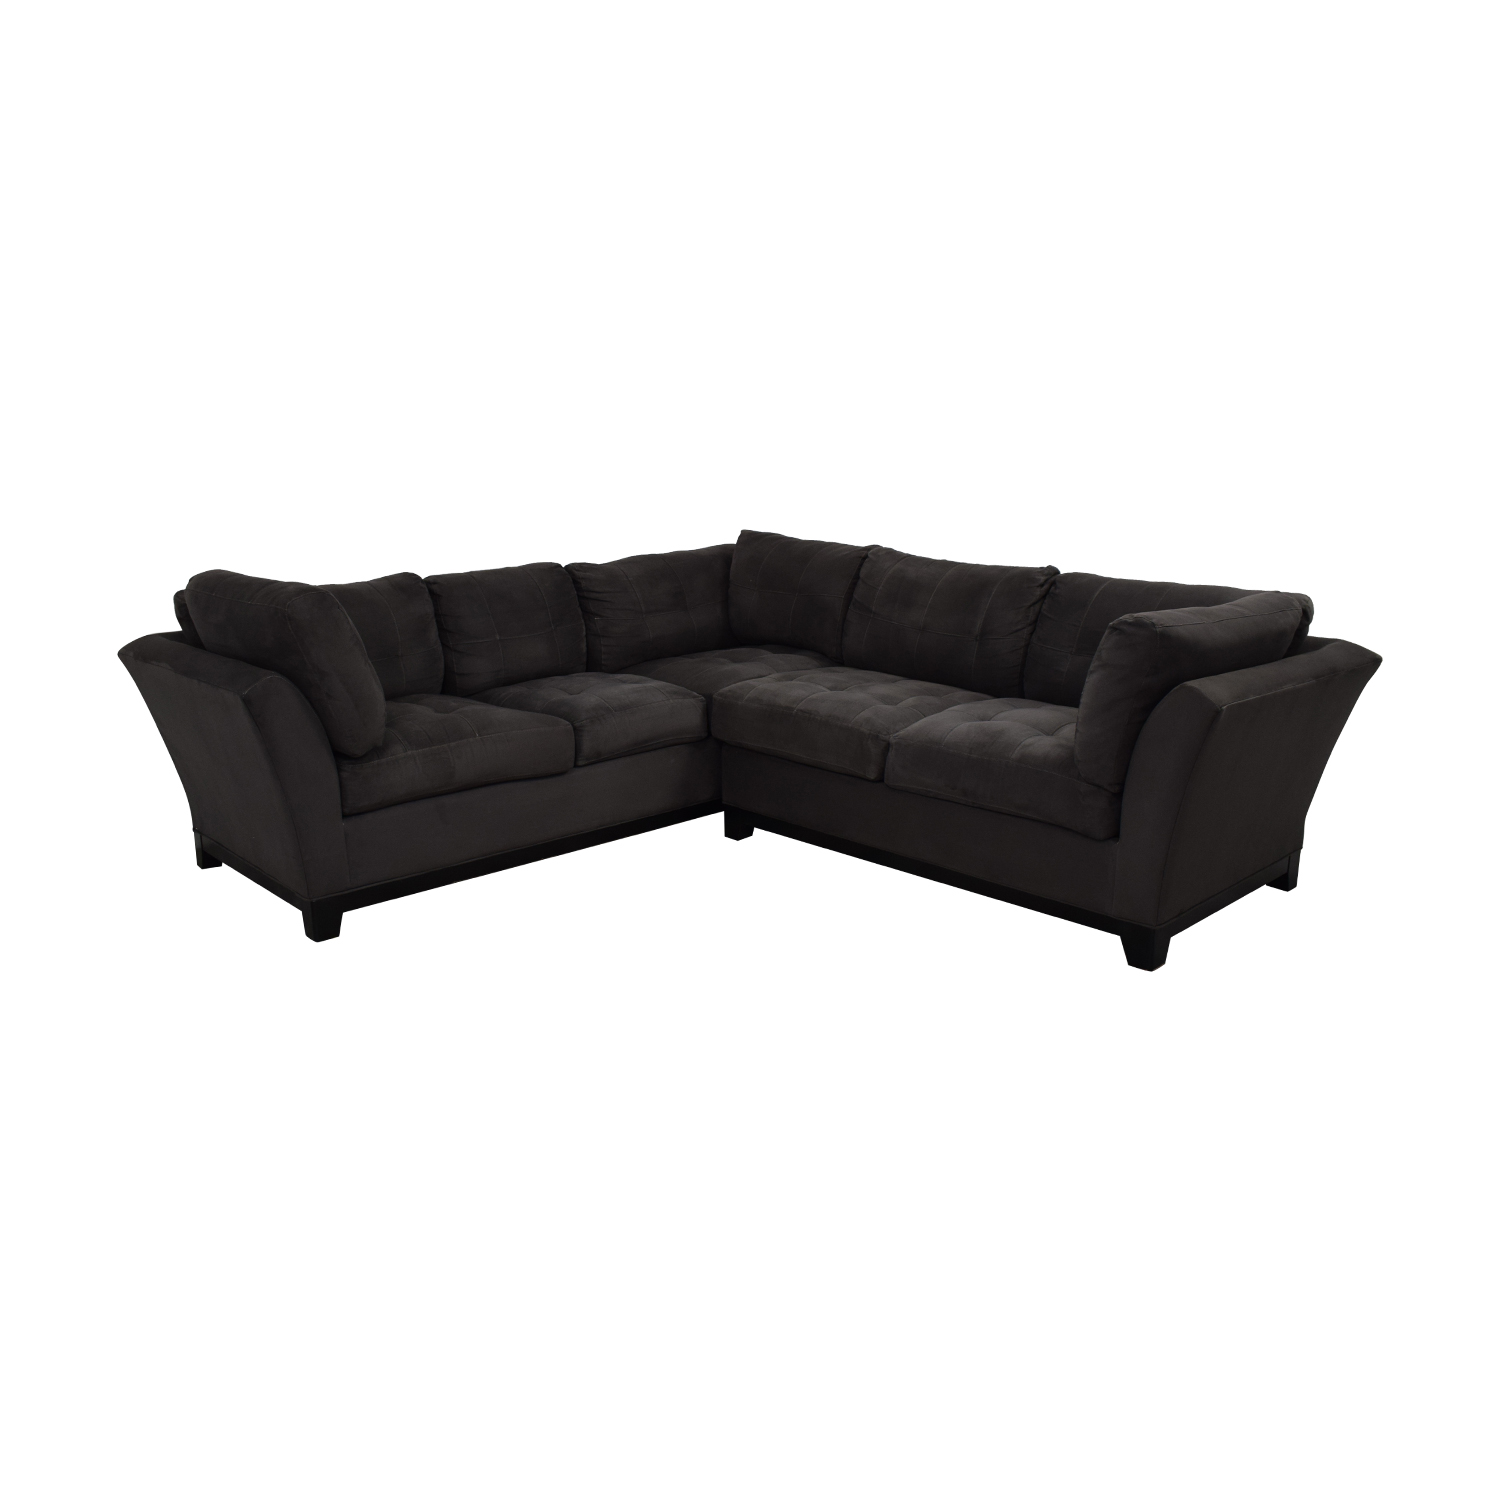 Cindy Crawford Home Cindy Crawford Home Two-Piece Sectional discount